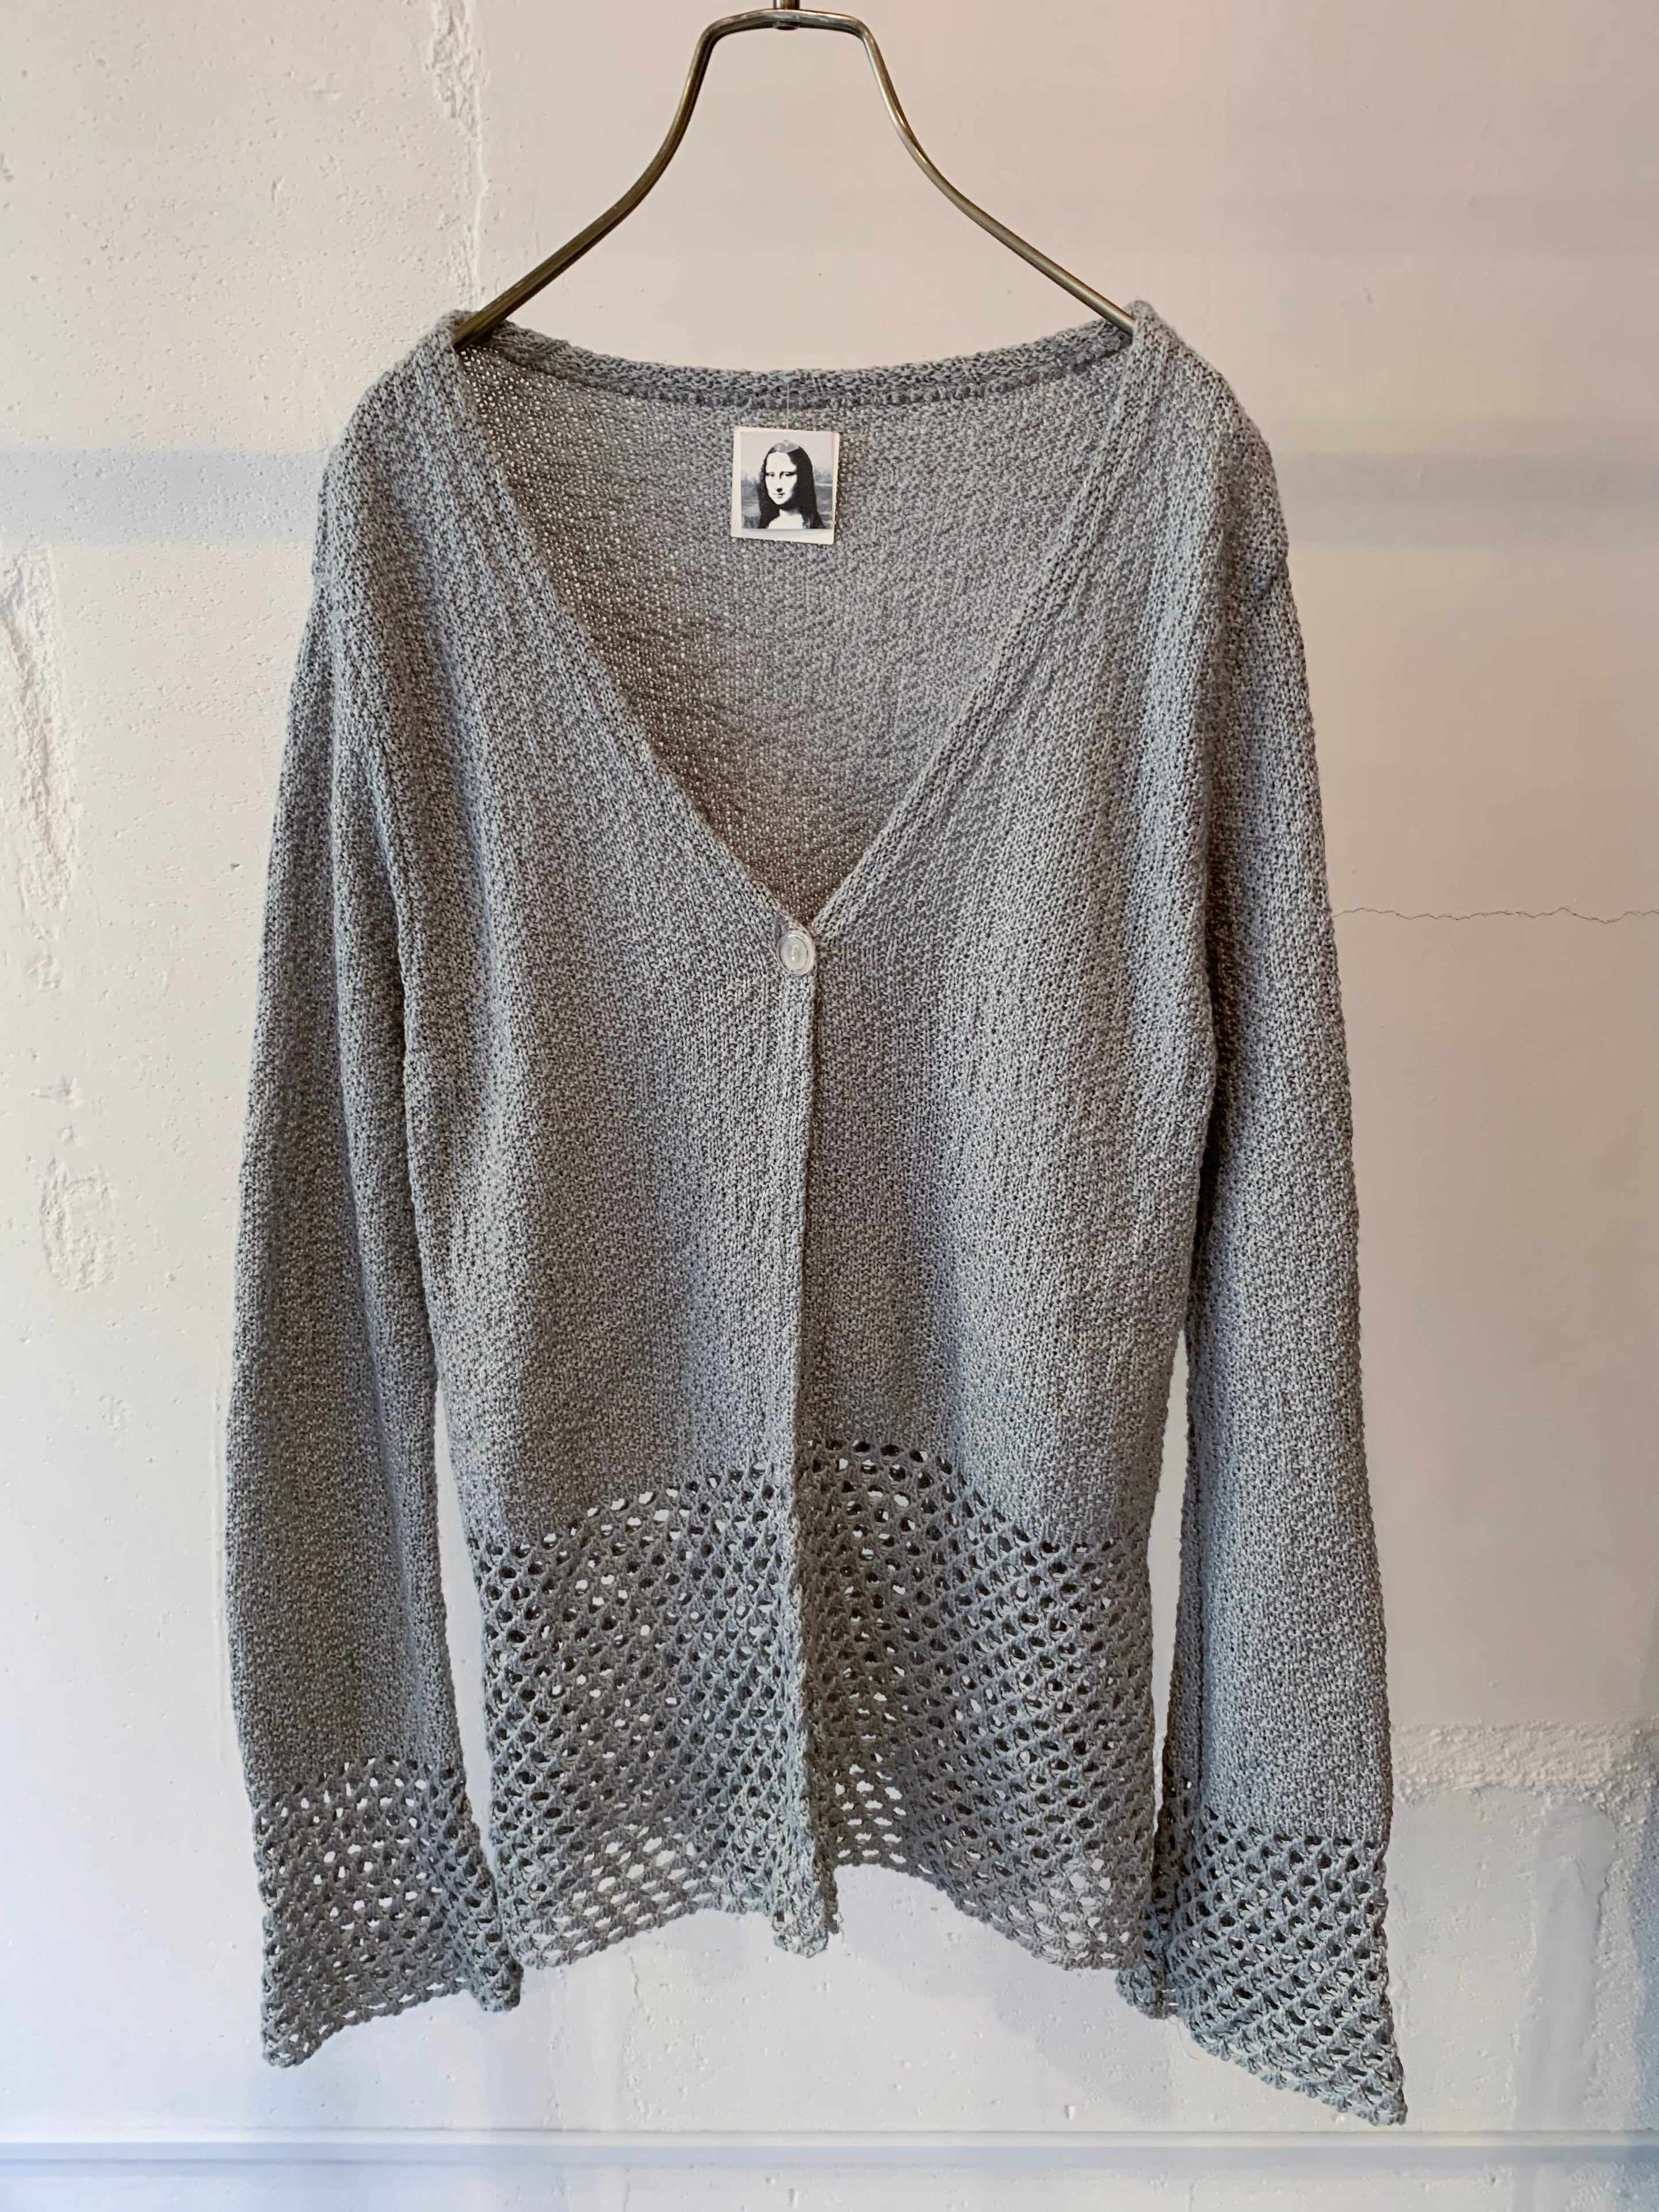 made in europe vintage knit cardigan